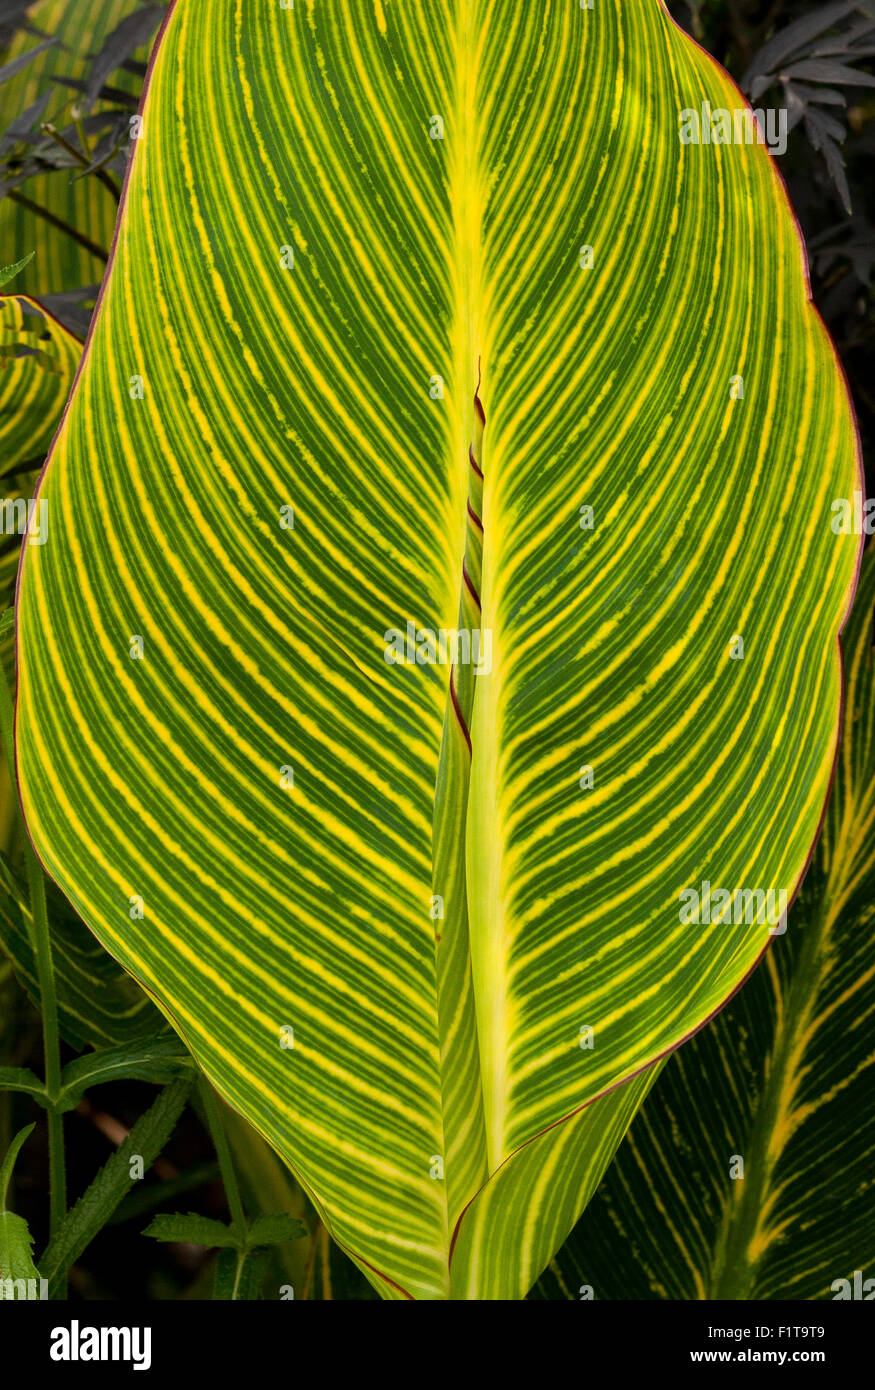 Striped leaf of the Cana plant with new leaf uncurling in a garden in England, UK Stock Photo